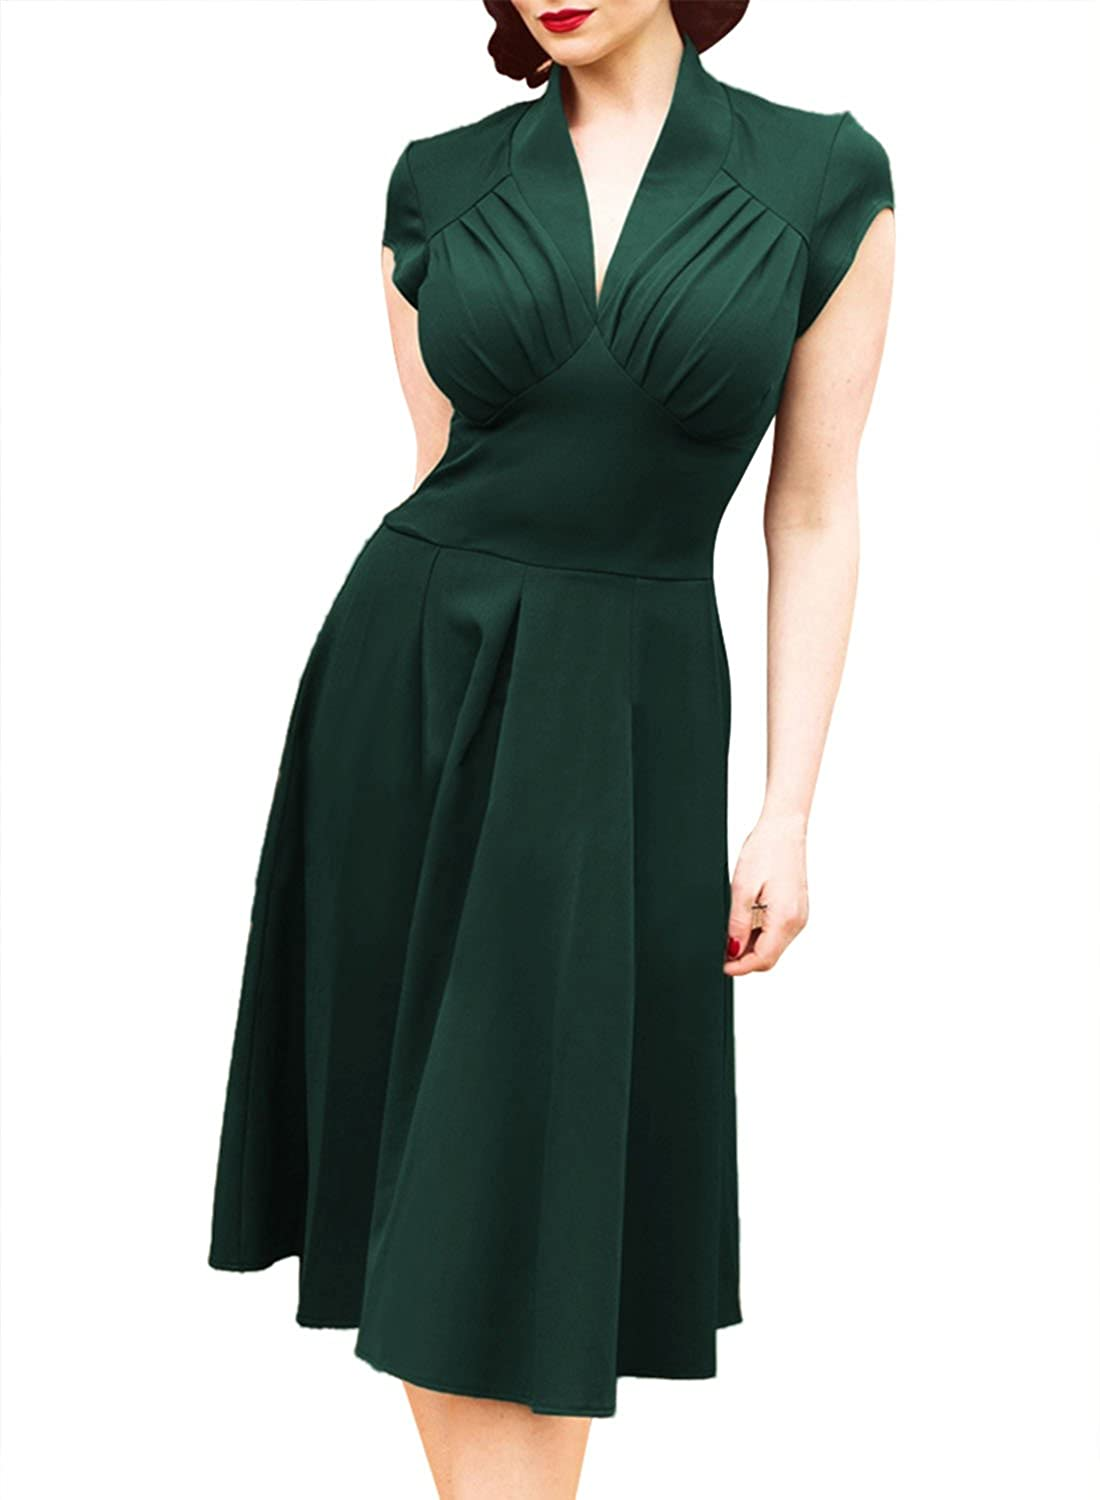 1940s Dresses and Clothing UK | 40s Shoes UK Sweetmeet Womens 1940s Vintage Rockabilly Ball Gown Flared Dress Swing Skaters £25.99 AT vintagedancer.com